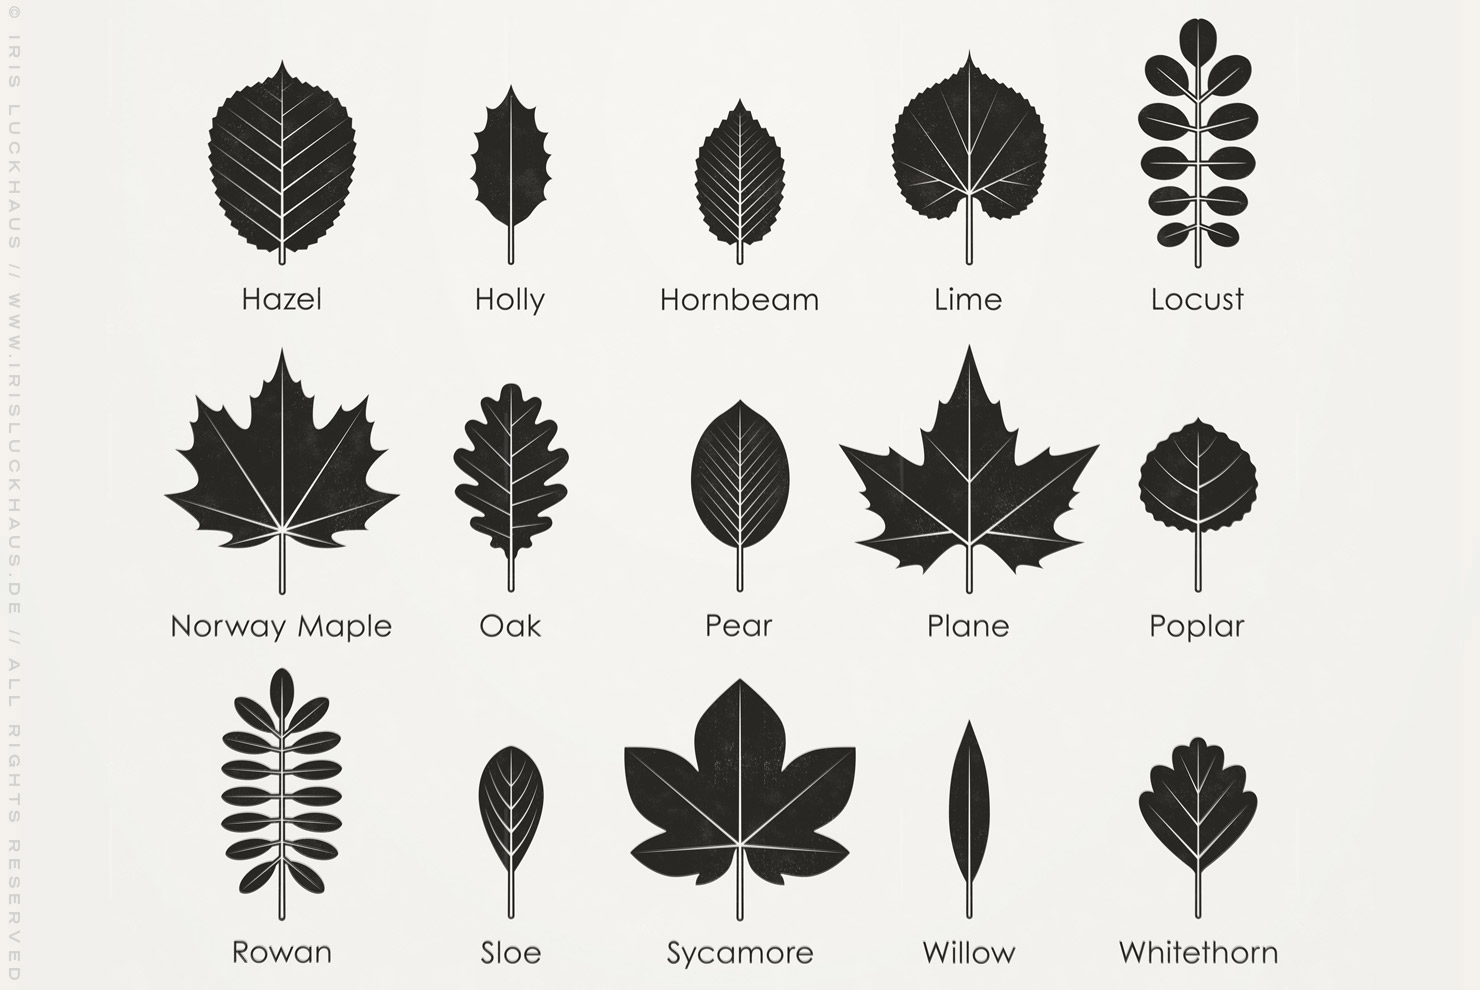 Poster with an infographic as identification sheet for the leaves of European tree, alder, apple, ash, beech, birch, boxwood, cherry, chestnut, elm, field maple, hazel, holly, hornbeam, lime, locust, norway maple, oak, pear, plane, poplar, rowan, sloe, sycamore, willow, whitethorn